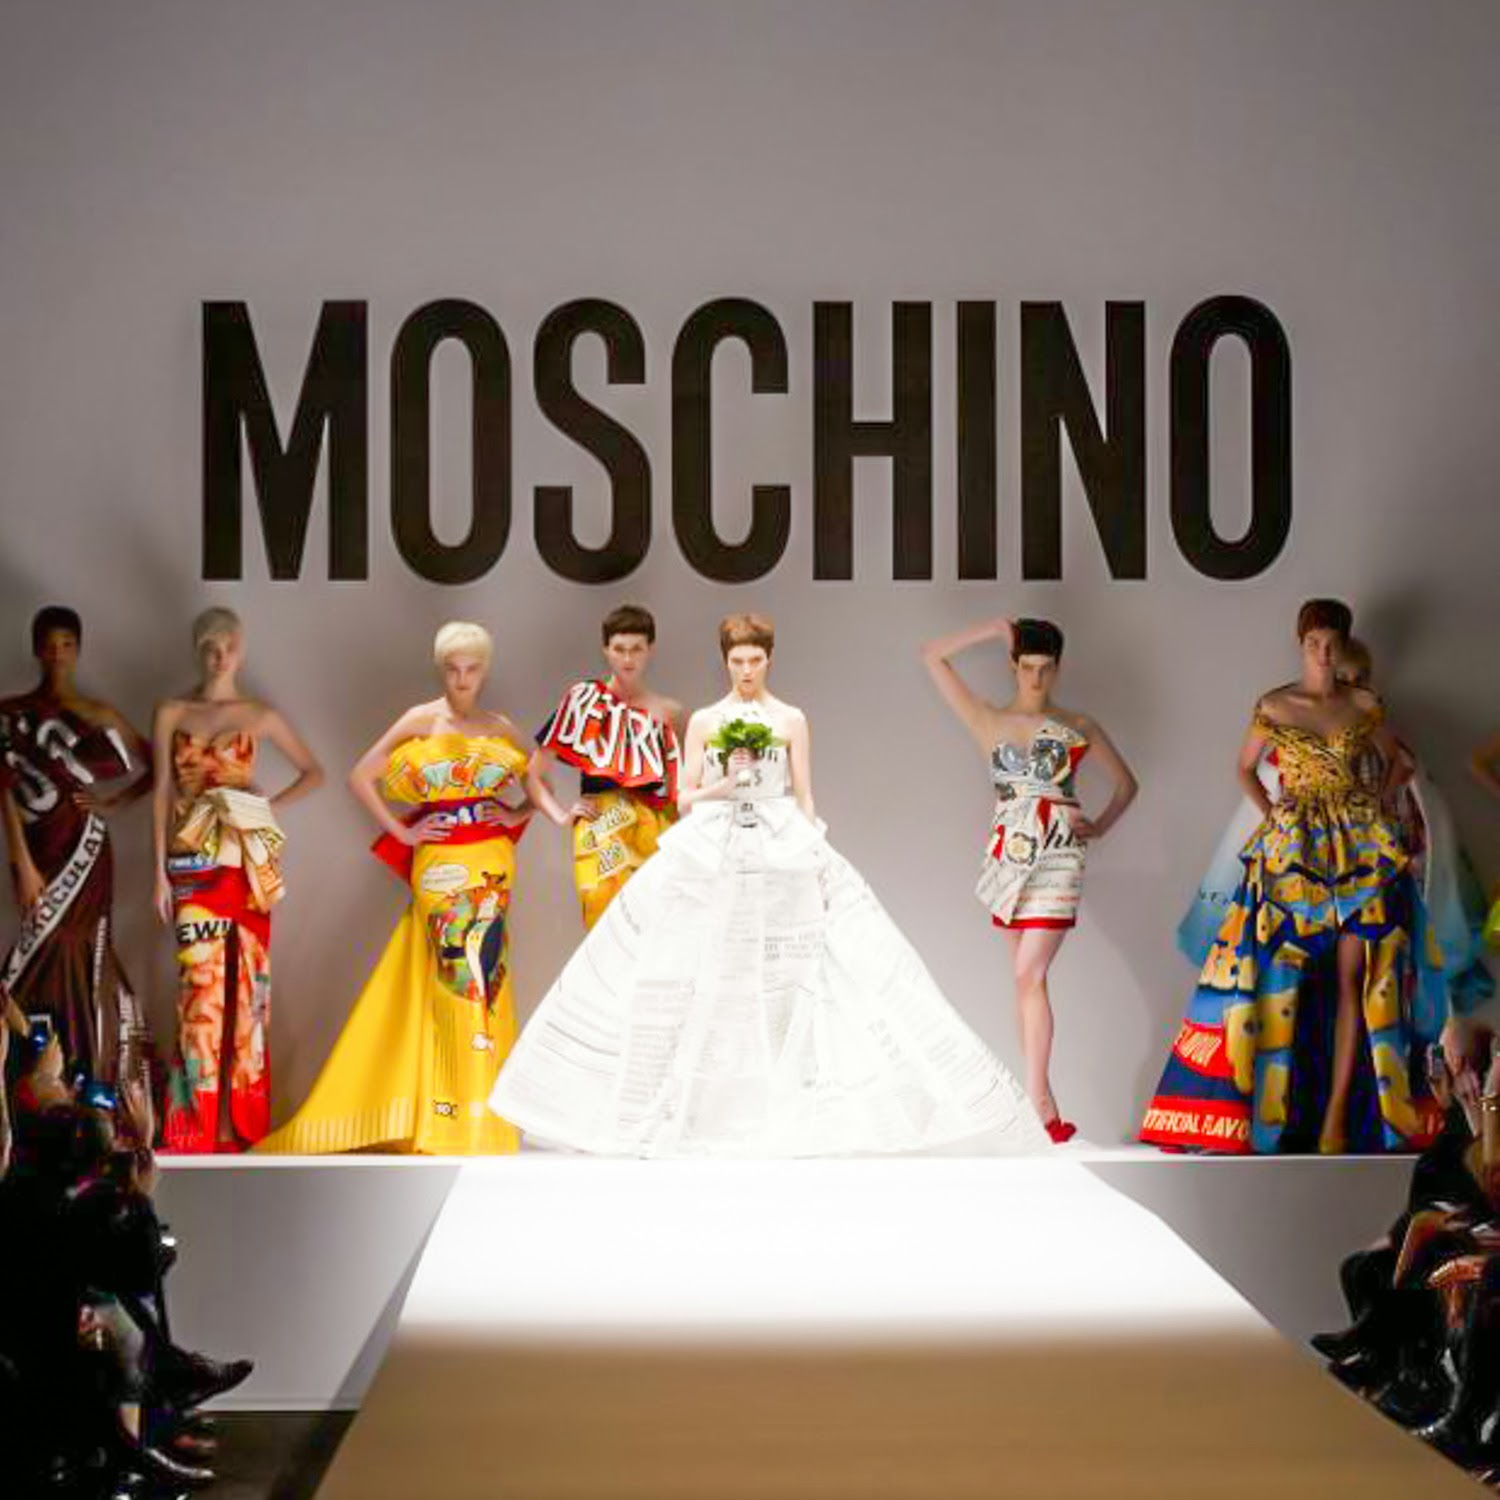 Moschino best of Milan Fashion Week 2014